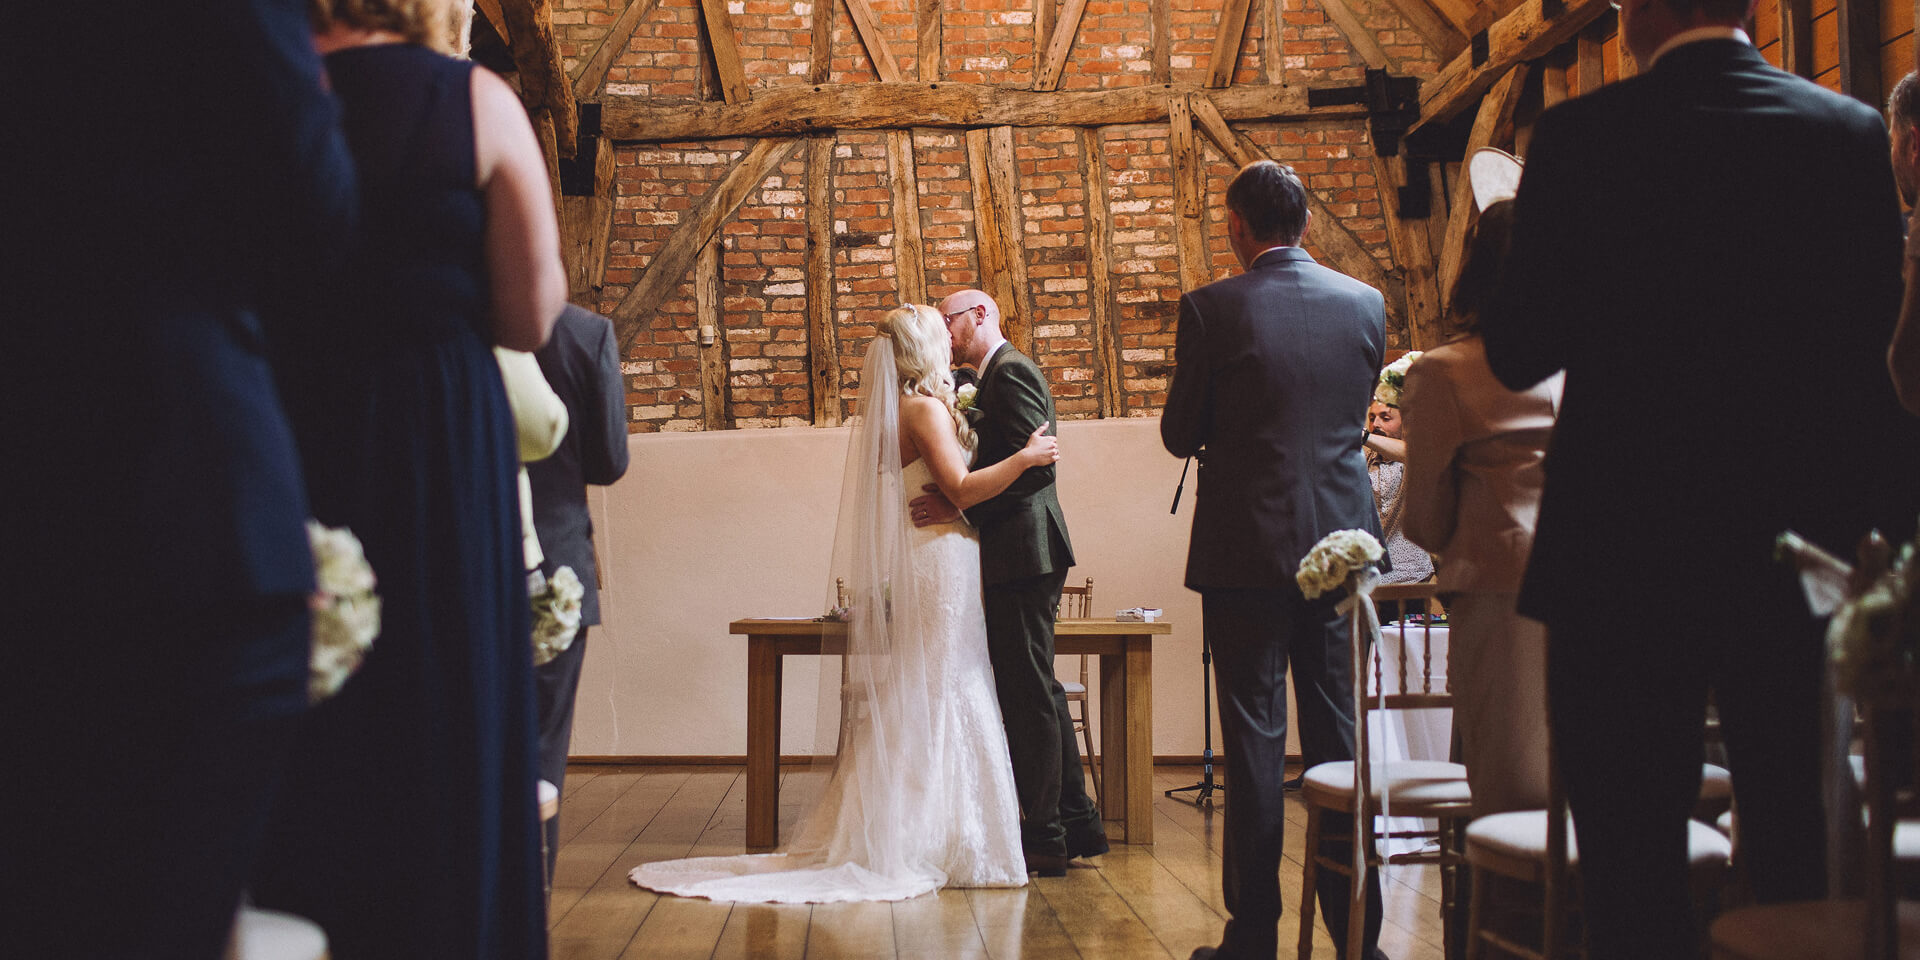 The couple seal their wedding vows with a kiss during their wedding ceremony inside the Rickety Barn